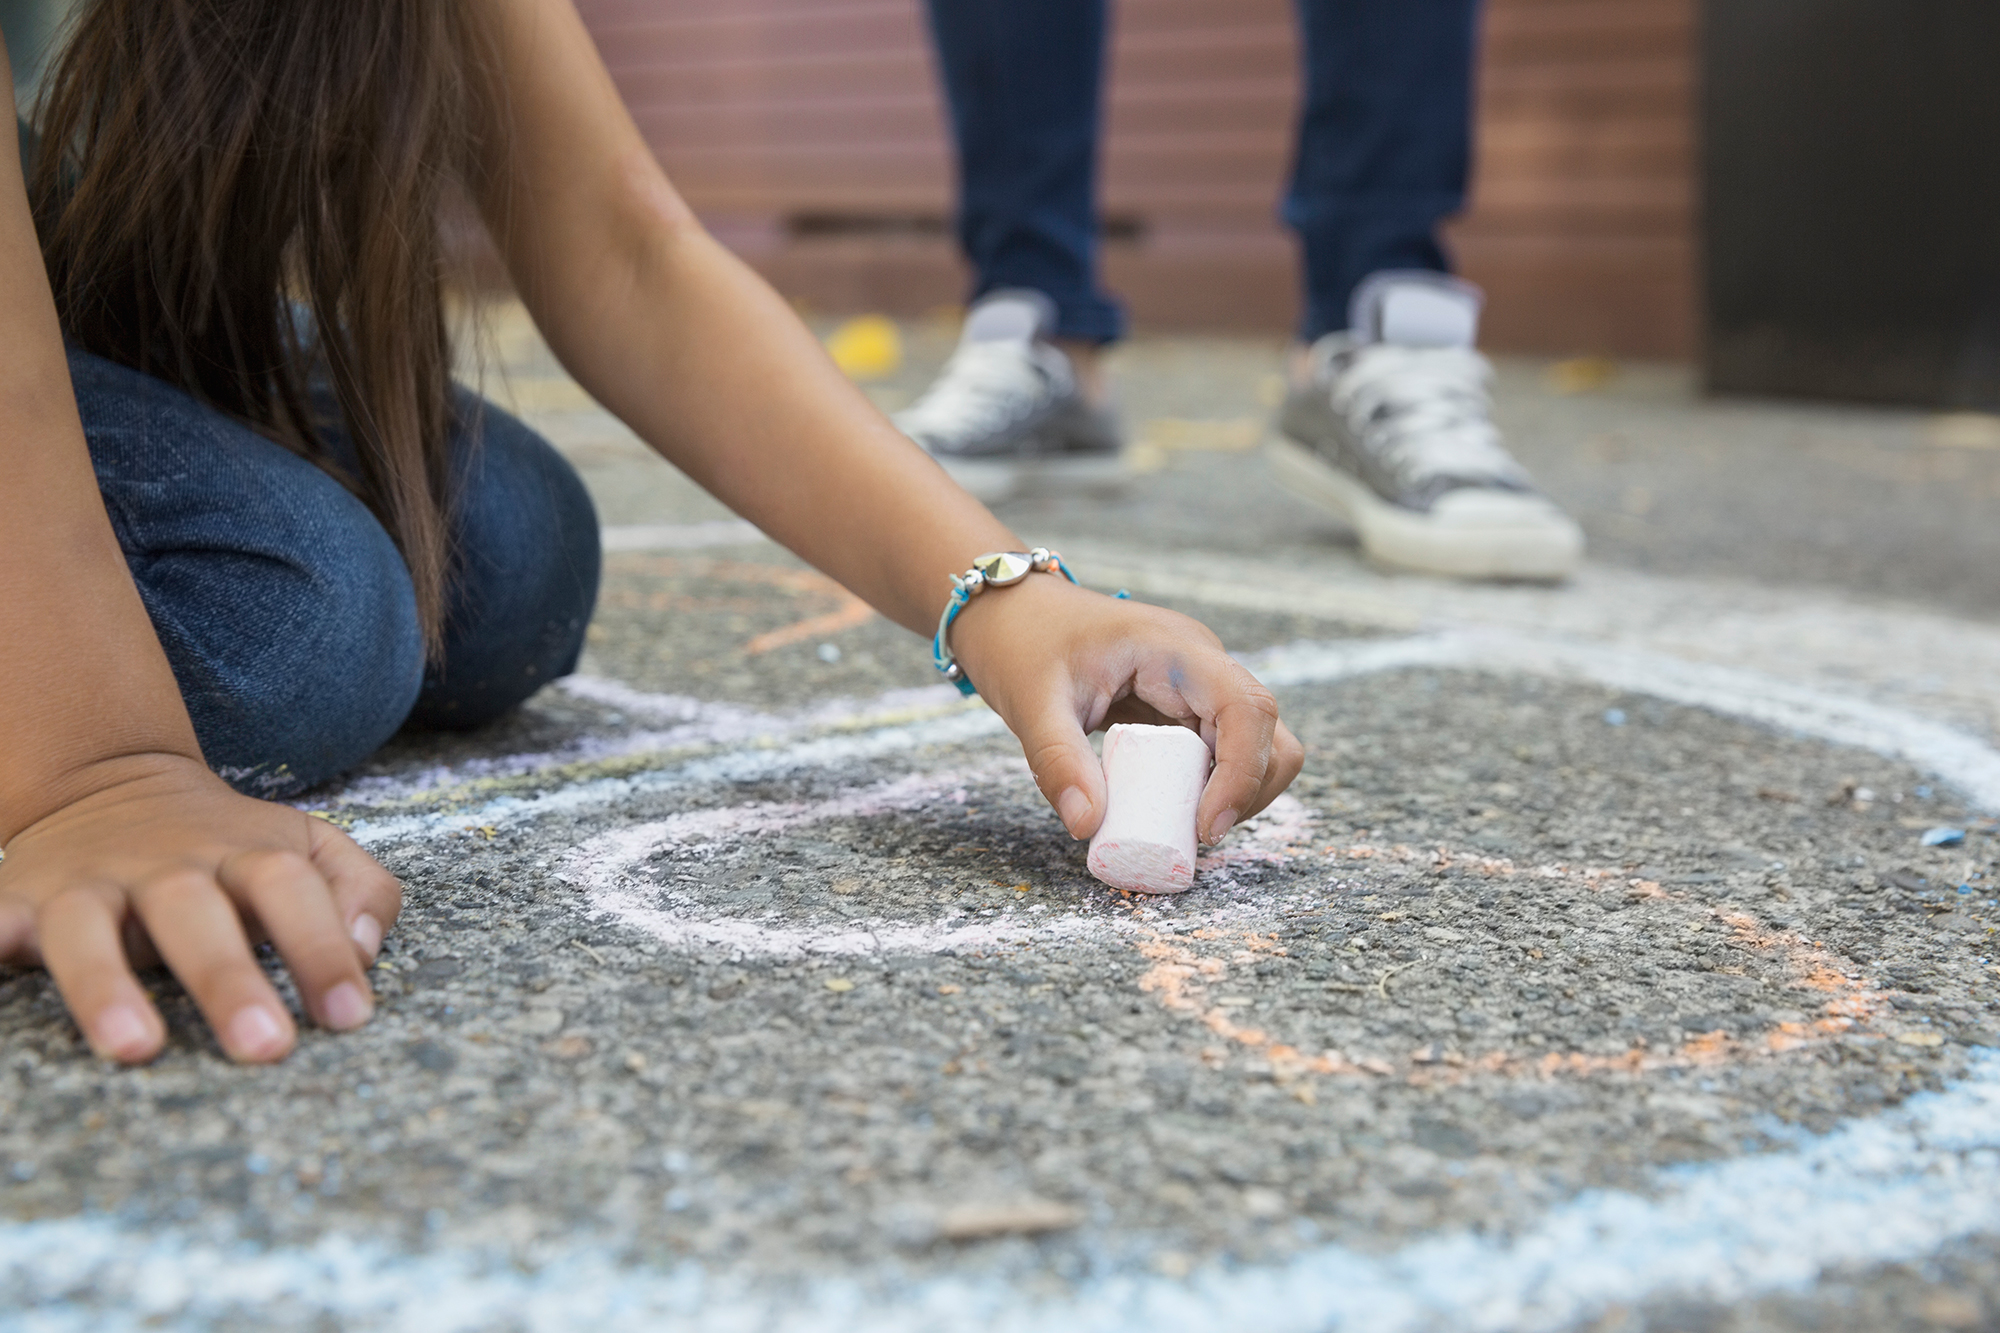 Girl drawing hopscotch number 8 with sidewalk chalk